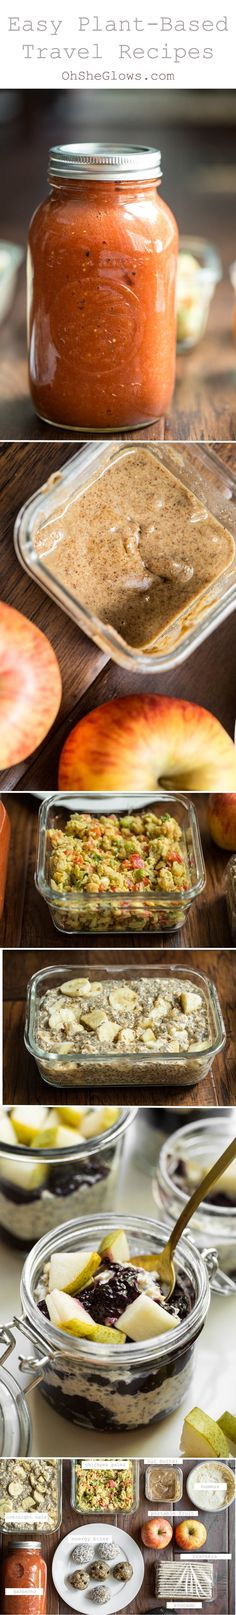 How To Pack Food For A Weekend Away In An Hour! (Plant-Based) — Great tips from Oh She Glows